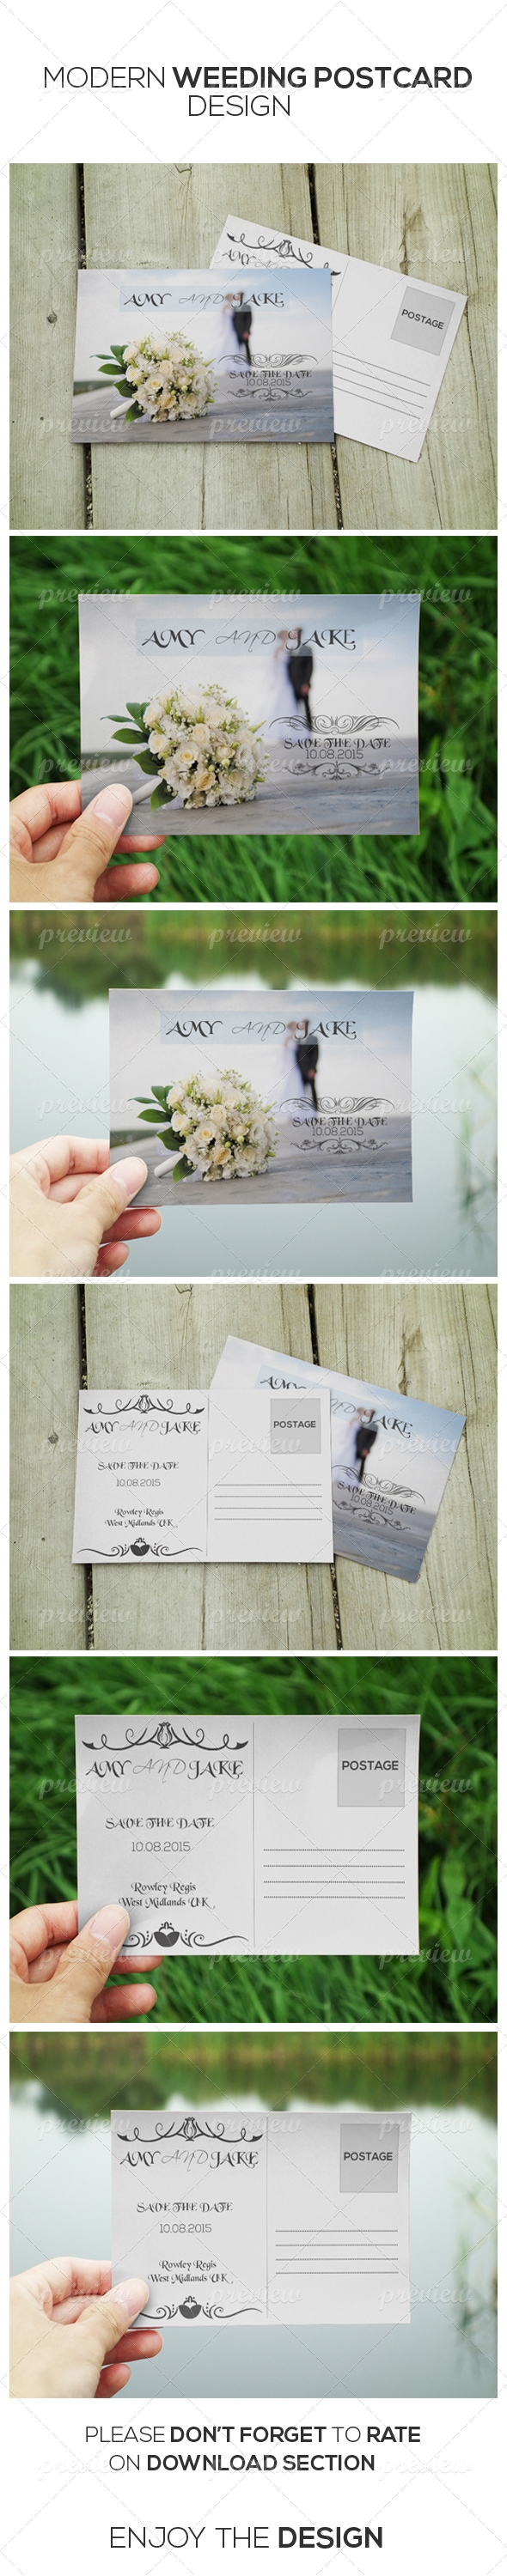 Modern Style Wedding invitation Post Card